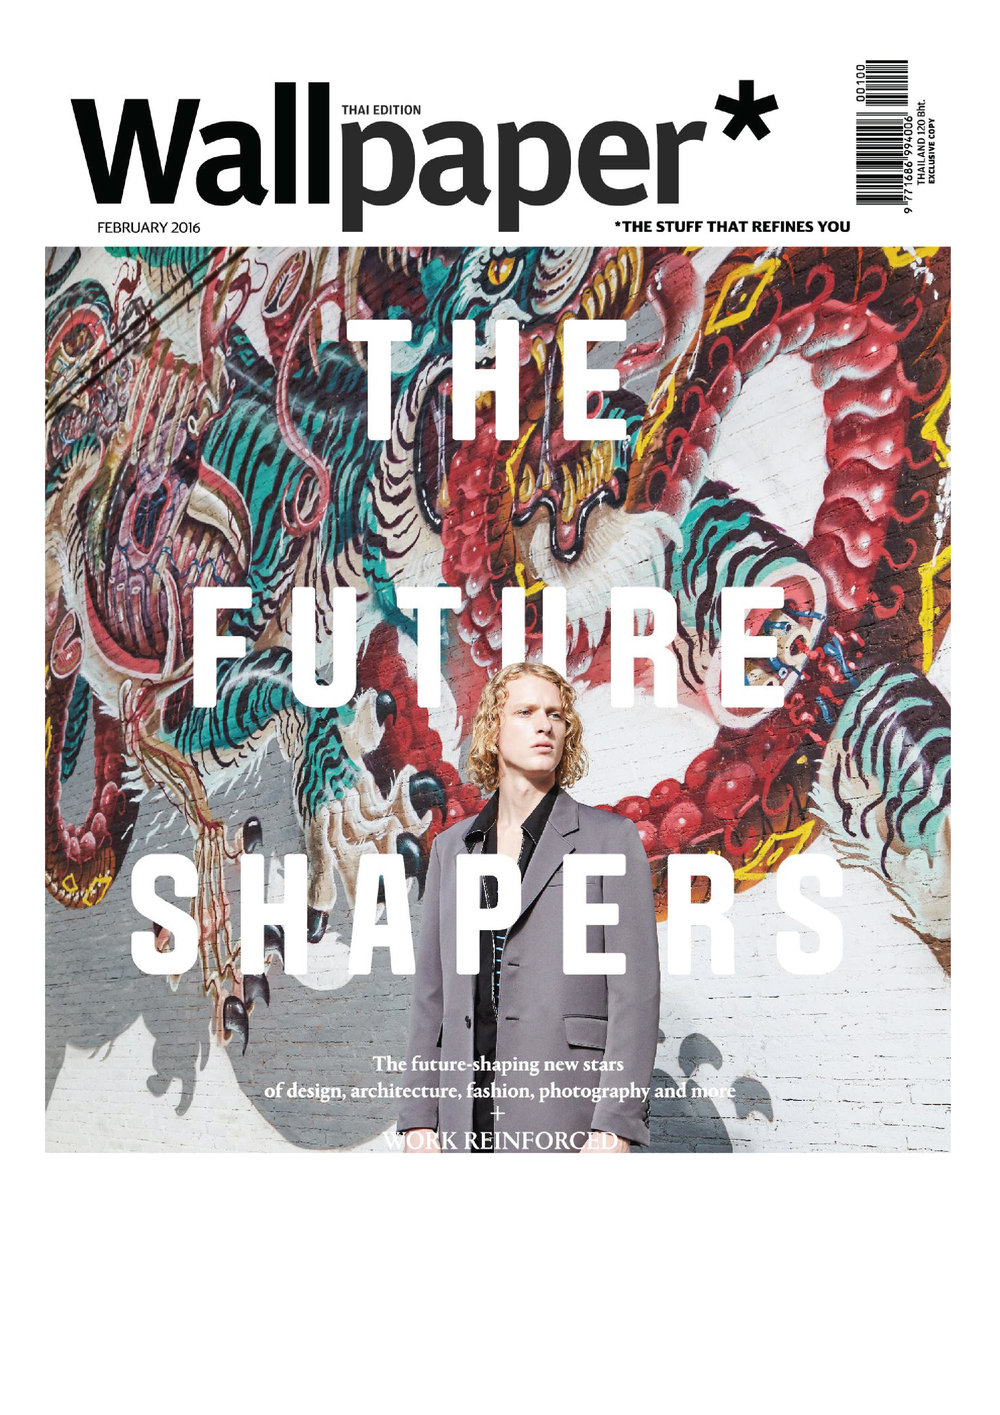 Wallpaper* - The Future Shapers - February, 2016